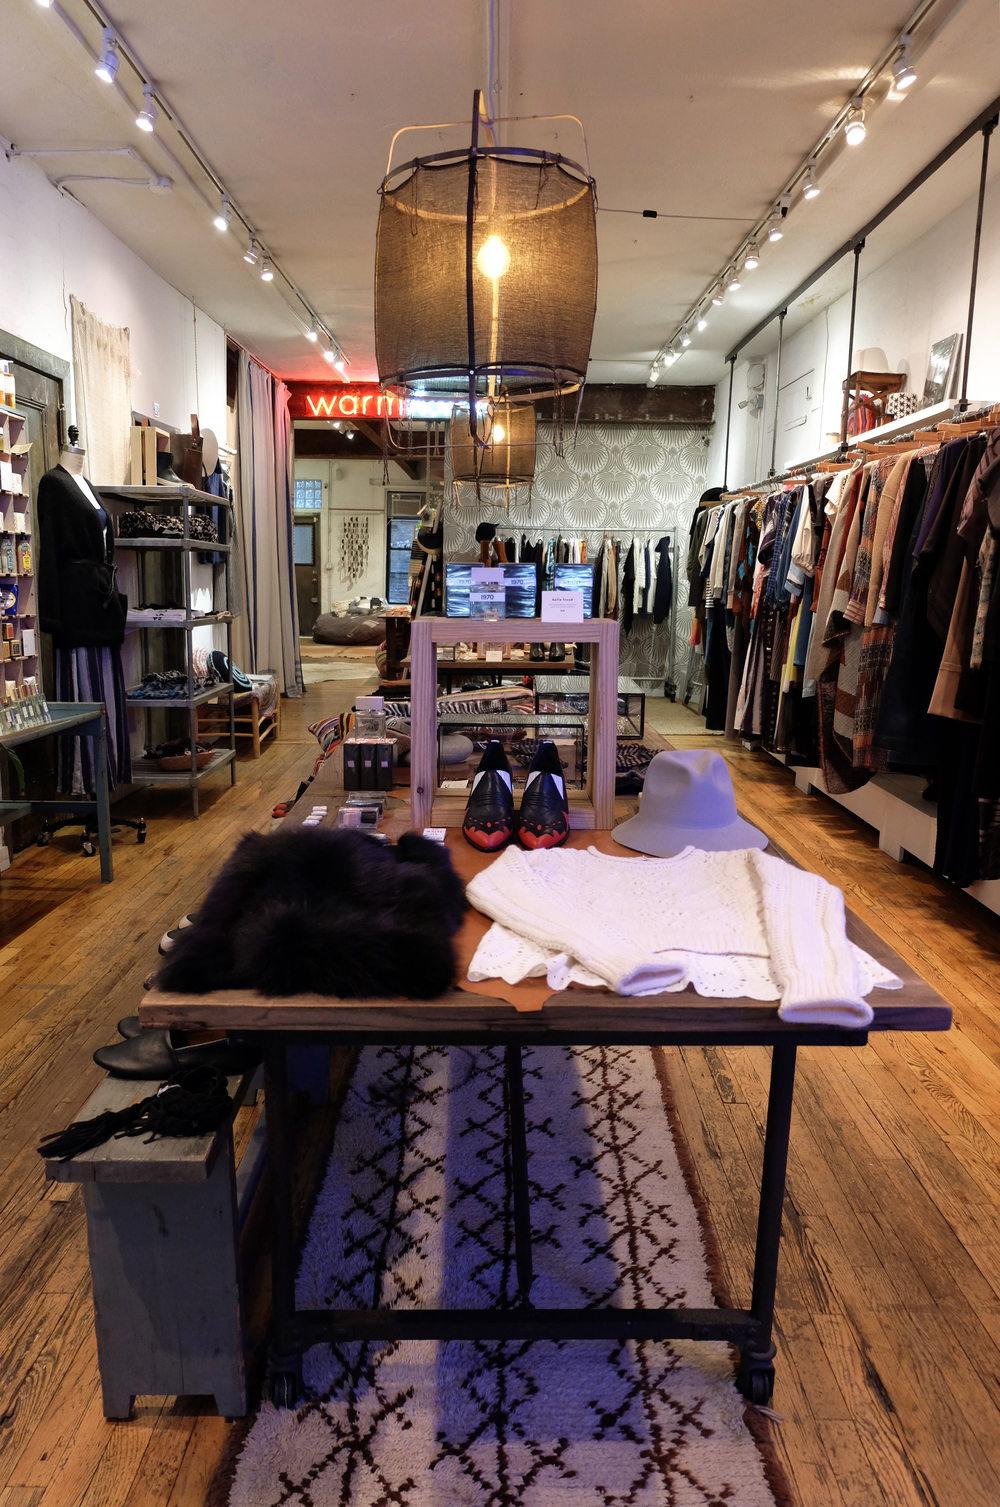 Warm / 181 Mott Street. New York, NY 10012 / 212-925-1200 Ryan Roche wool suede hats? Roseanna print and textures? Giada Forte jackets, Mother Jeans, and Raquel Allegra tie-dye? Yes please!